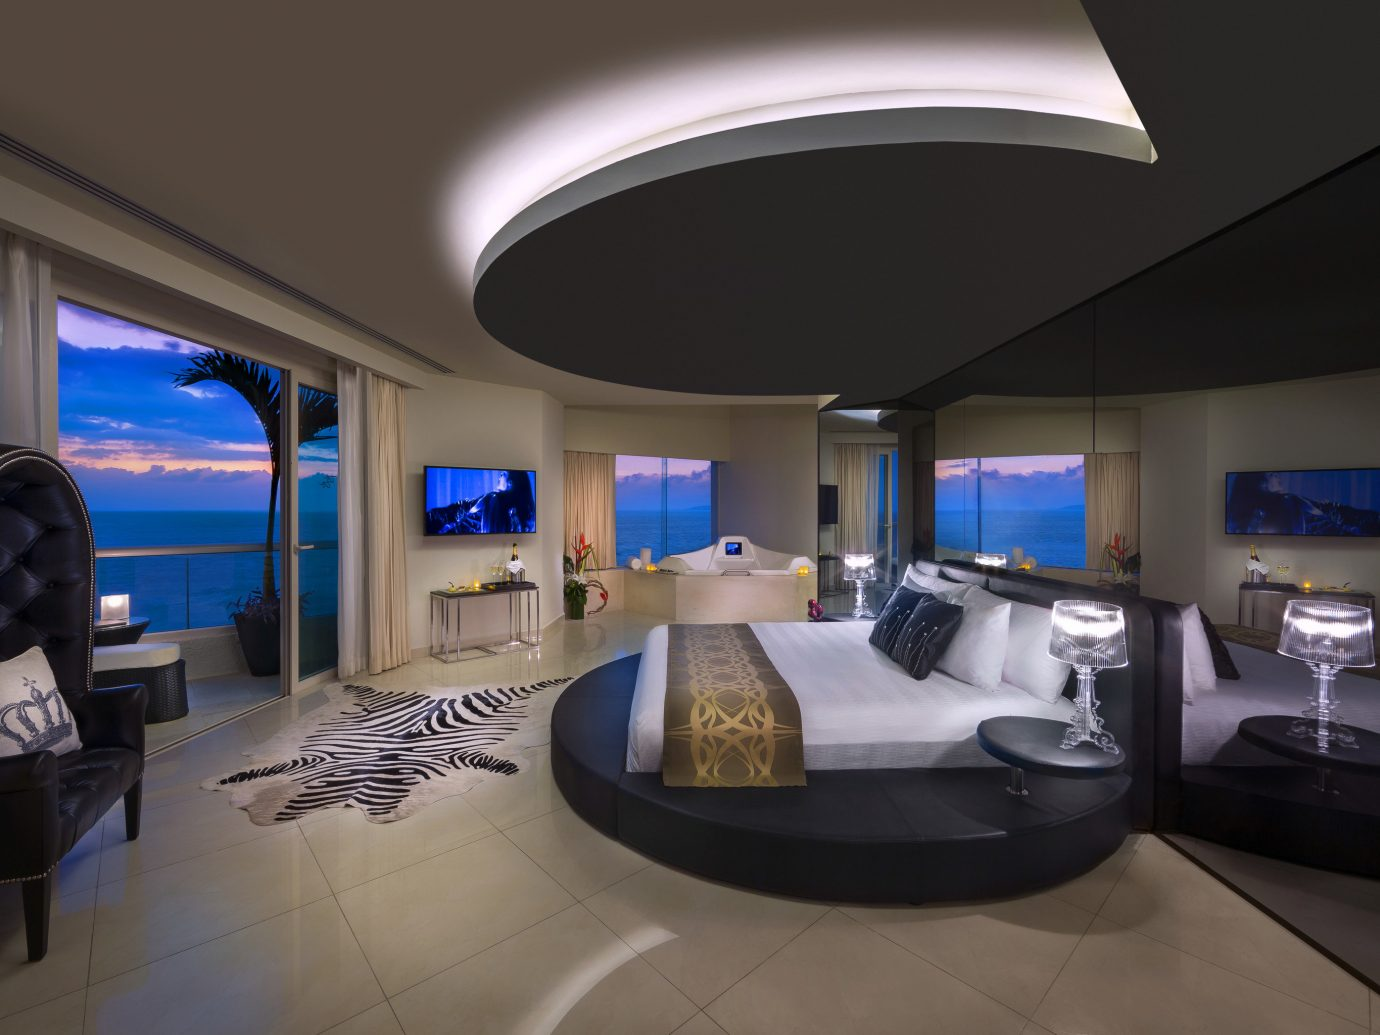 All-Inclusive Resorts Hotels indoor ceiling wall floor interior design room Architecture living room real estate penthouse apartment house estate interior designer apartment counter furniture